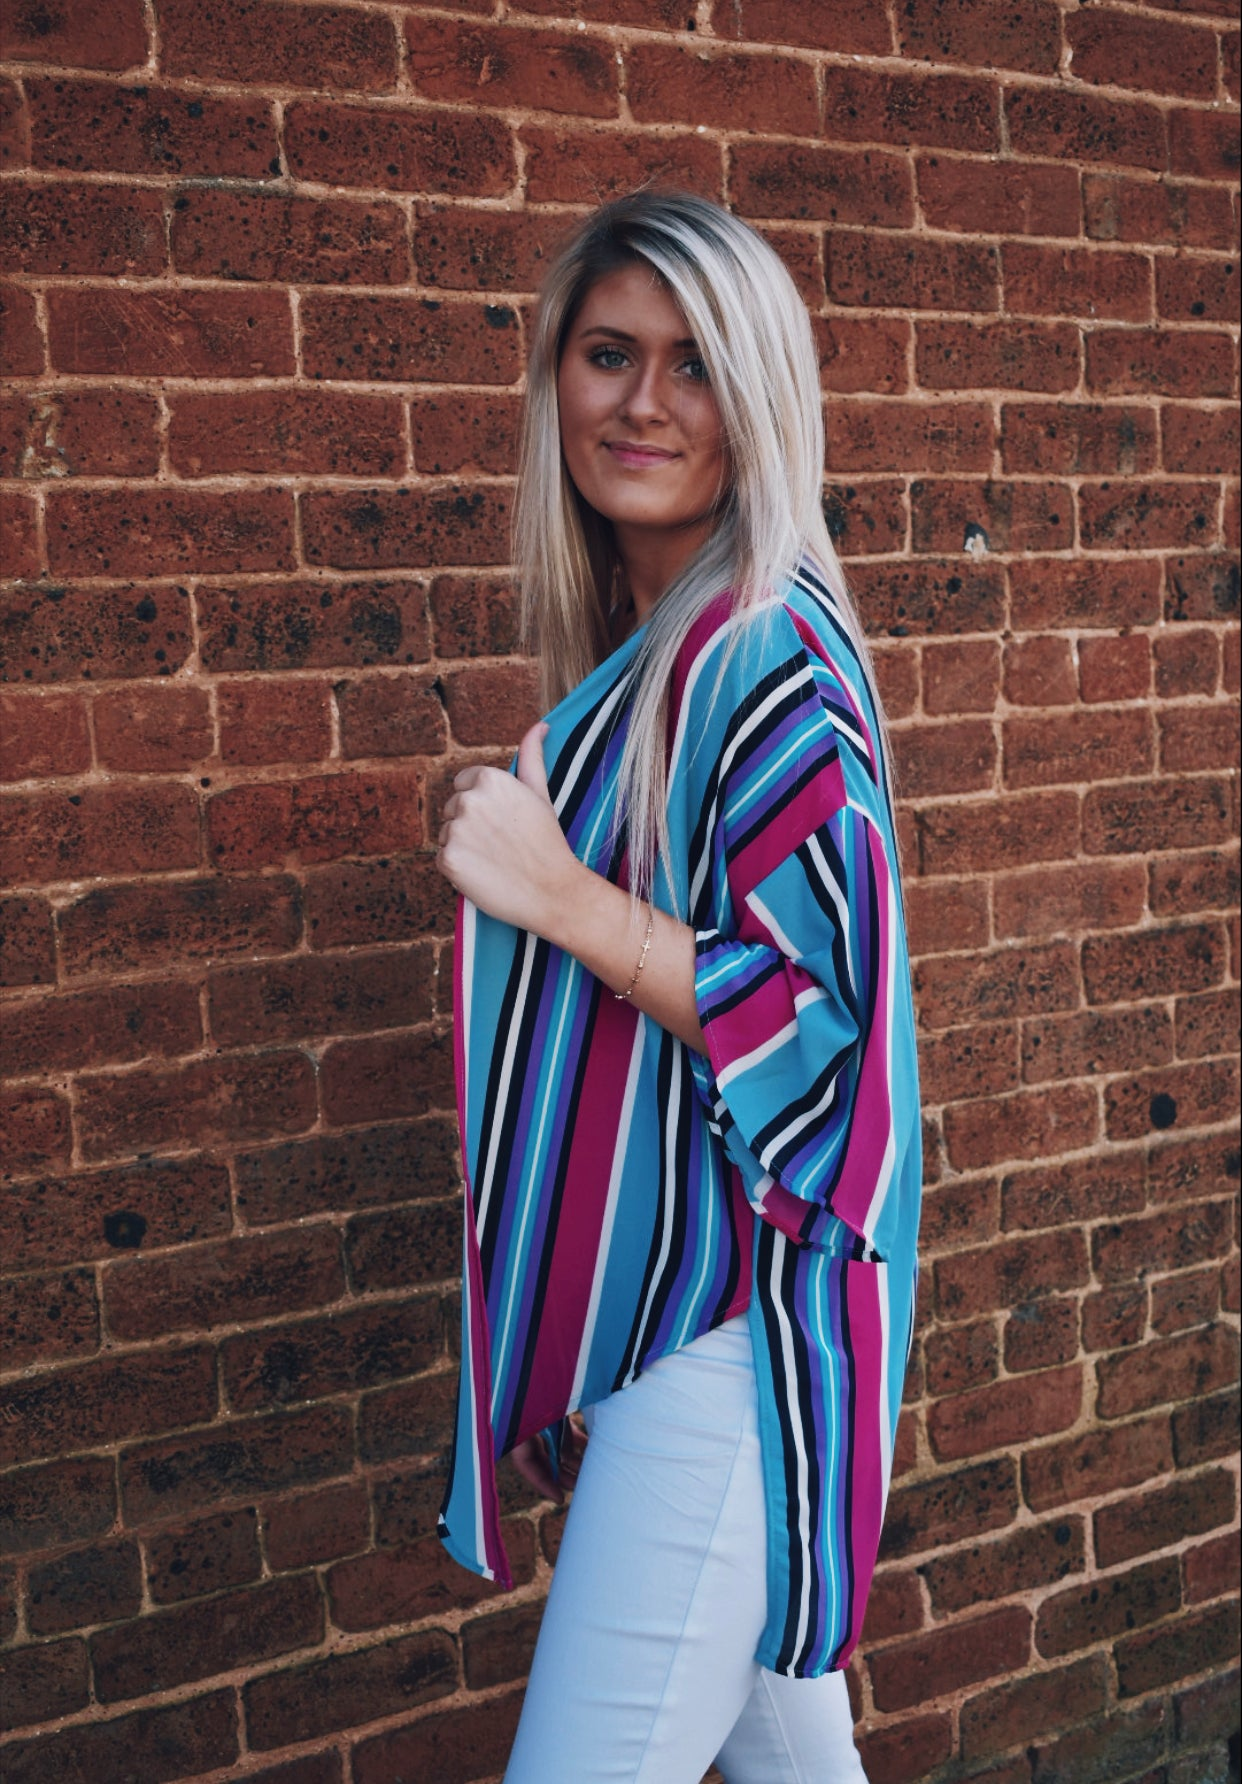 Brand new to our boutique! Lighten up your wardrobe with this Multi-Colored Striped Kimono! The breezy, lightweight material makes it perfect for layering over almost anything! Also fits true to size.